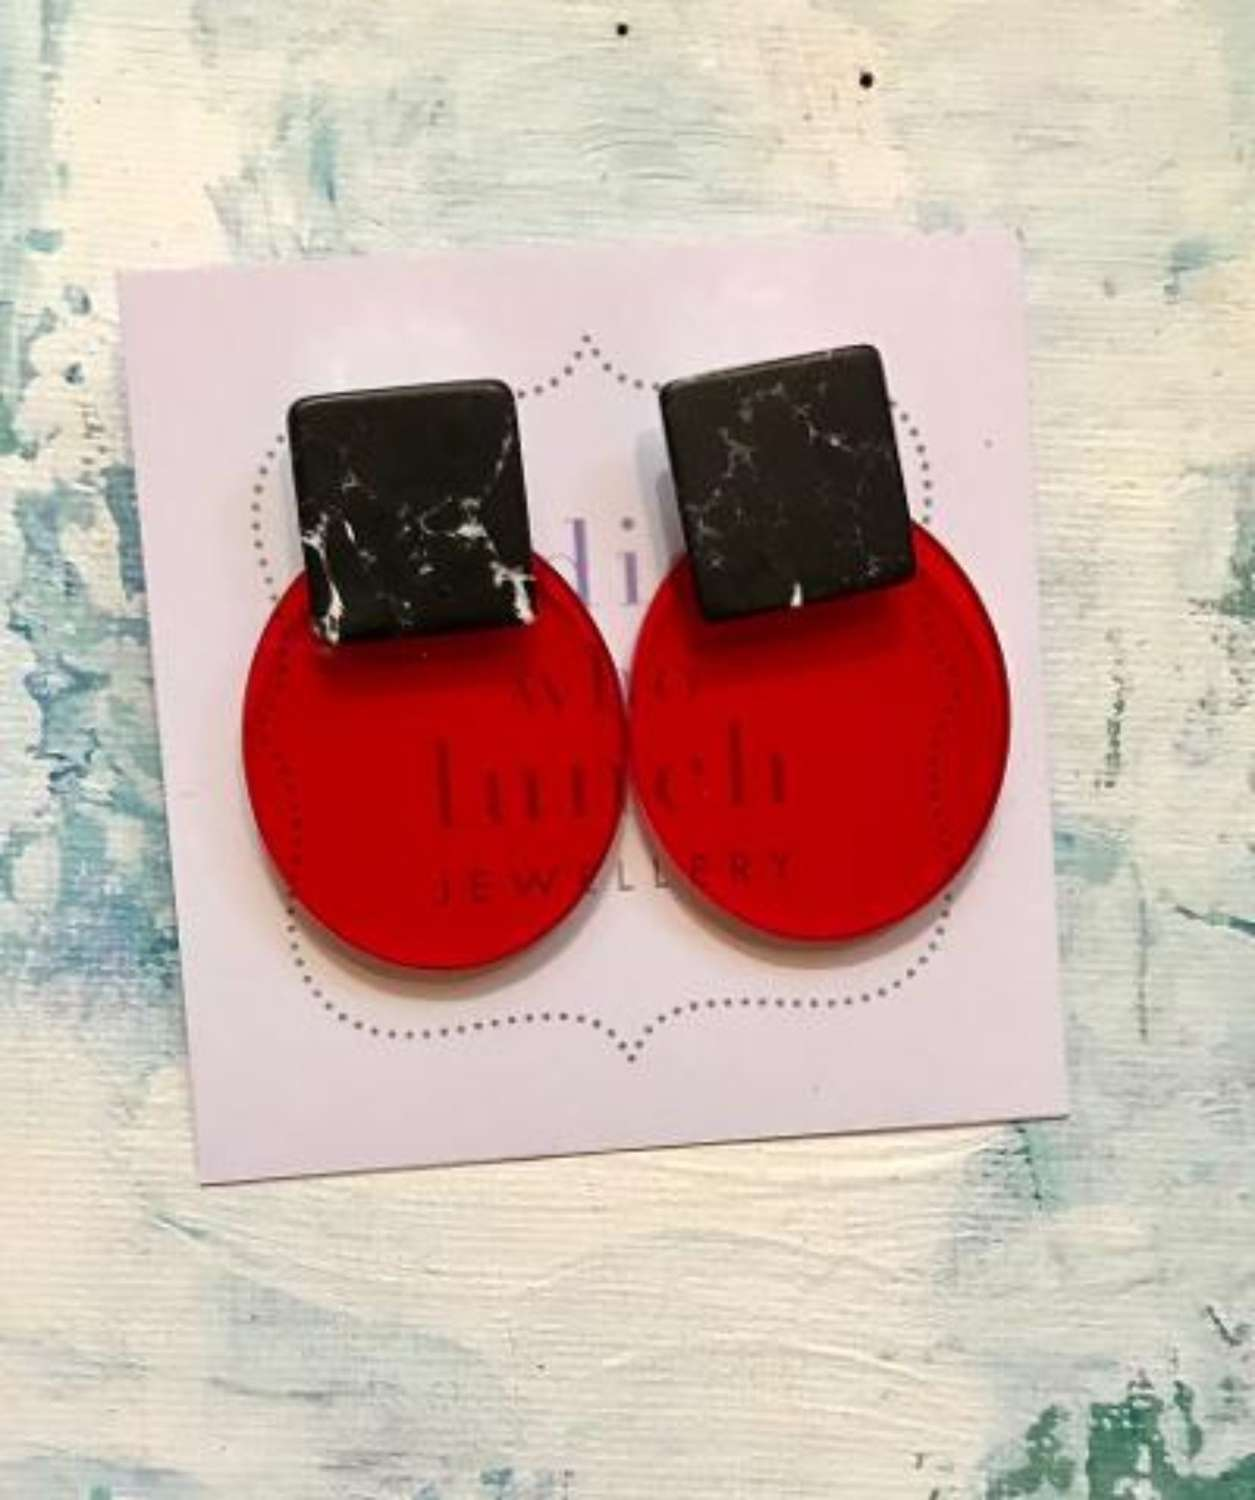 Red and black resin earrings